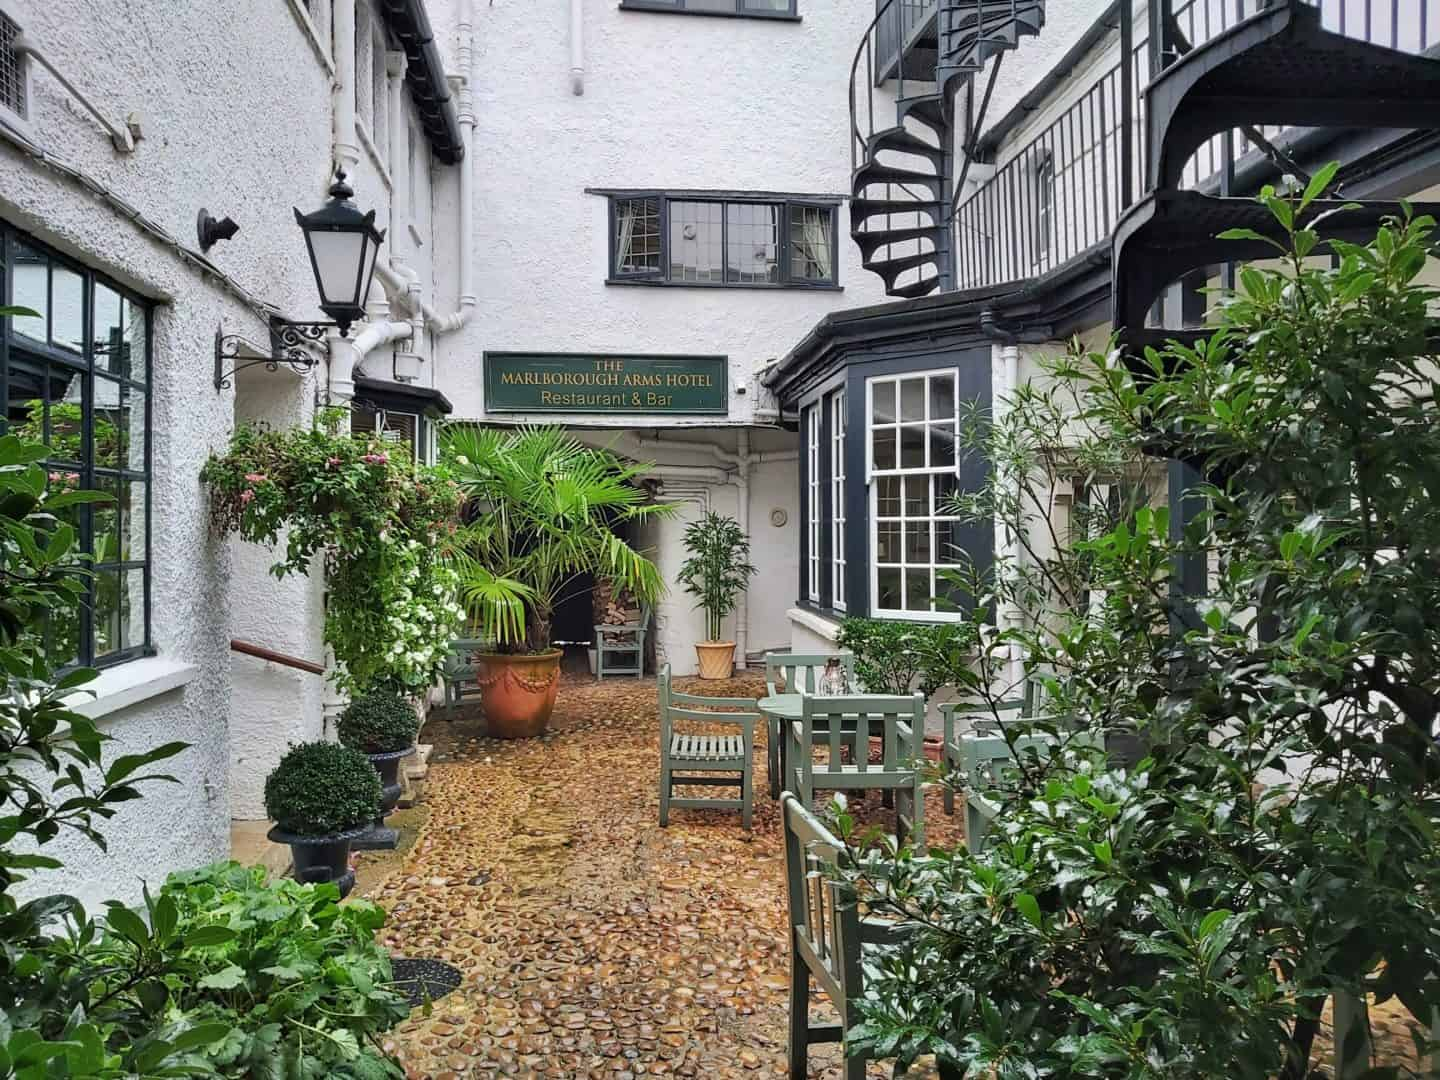 Dog friendly Marlborough Arms in Woodstock: Review